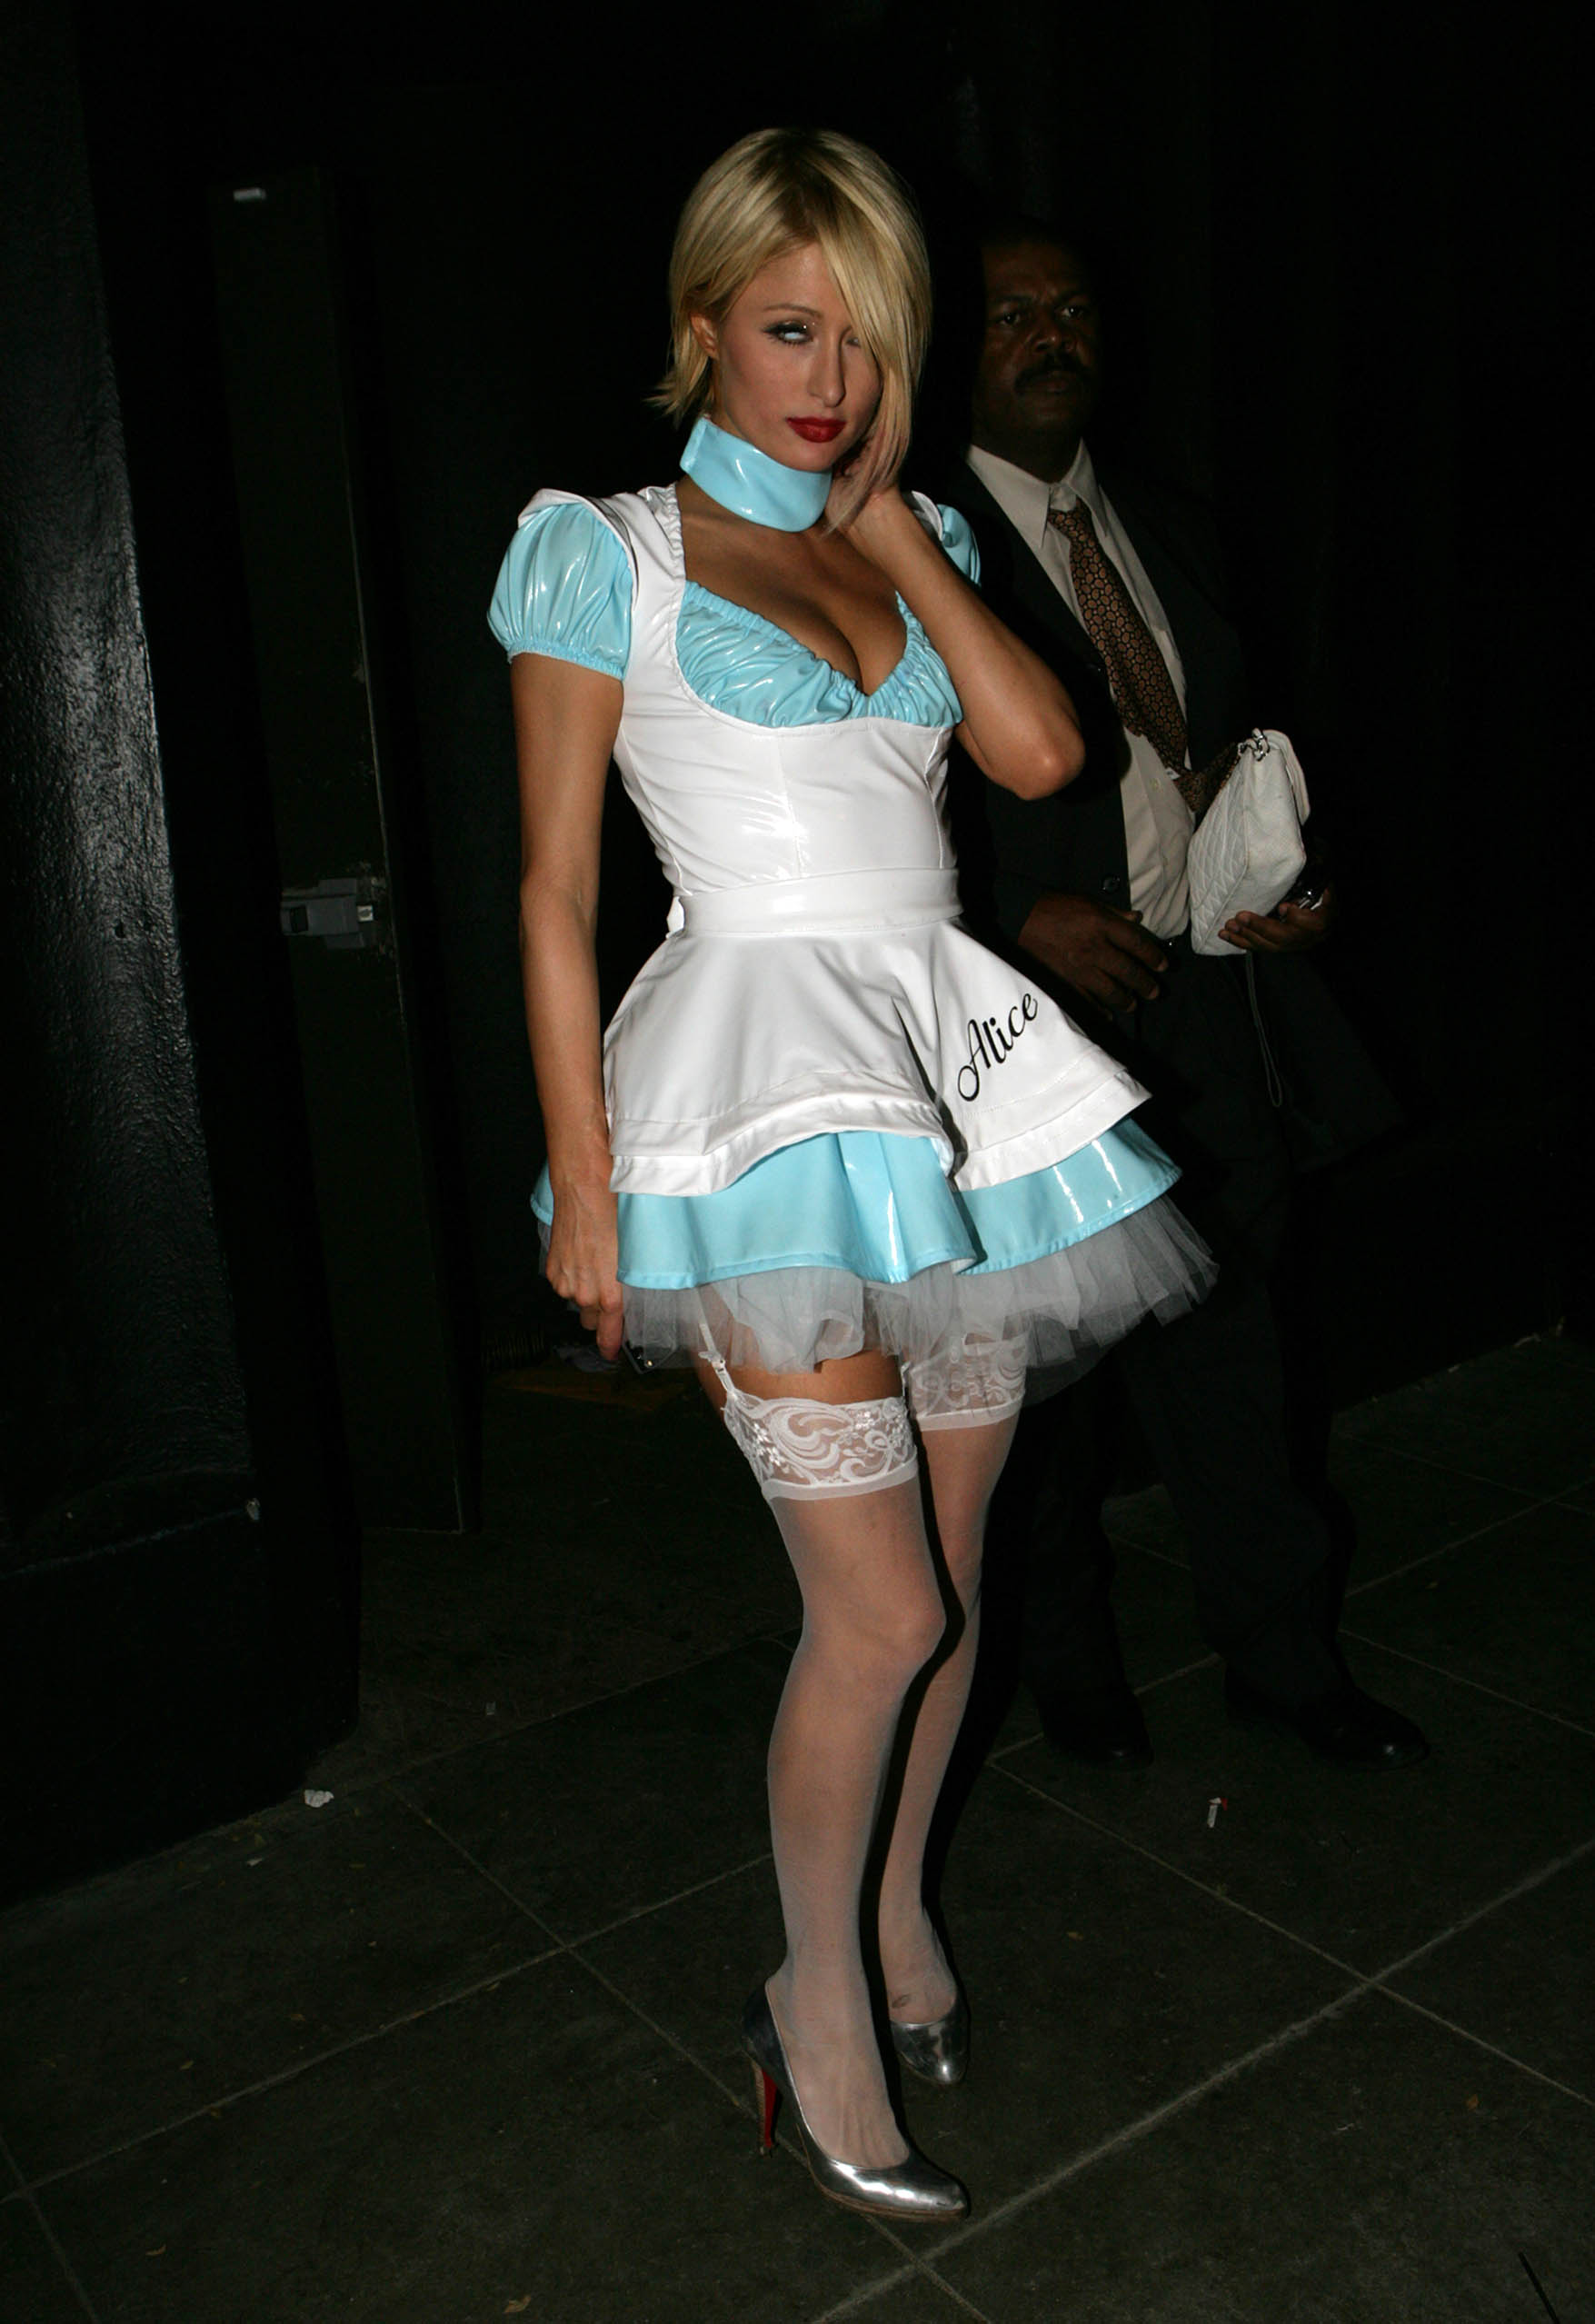 03941_celeb-city.eu_Paris_Hilton_at_the_Halloween_Party_in_Beverly_Hills_27.10.2007_02_123_985lo.jpg